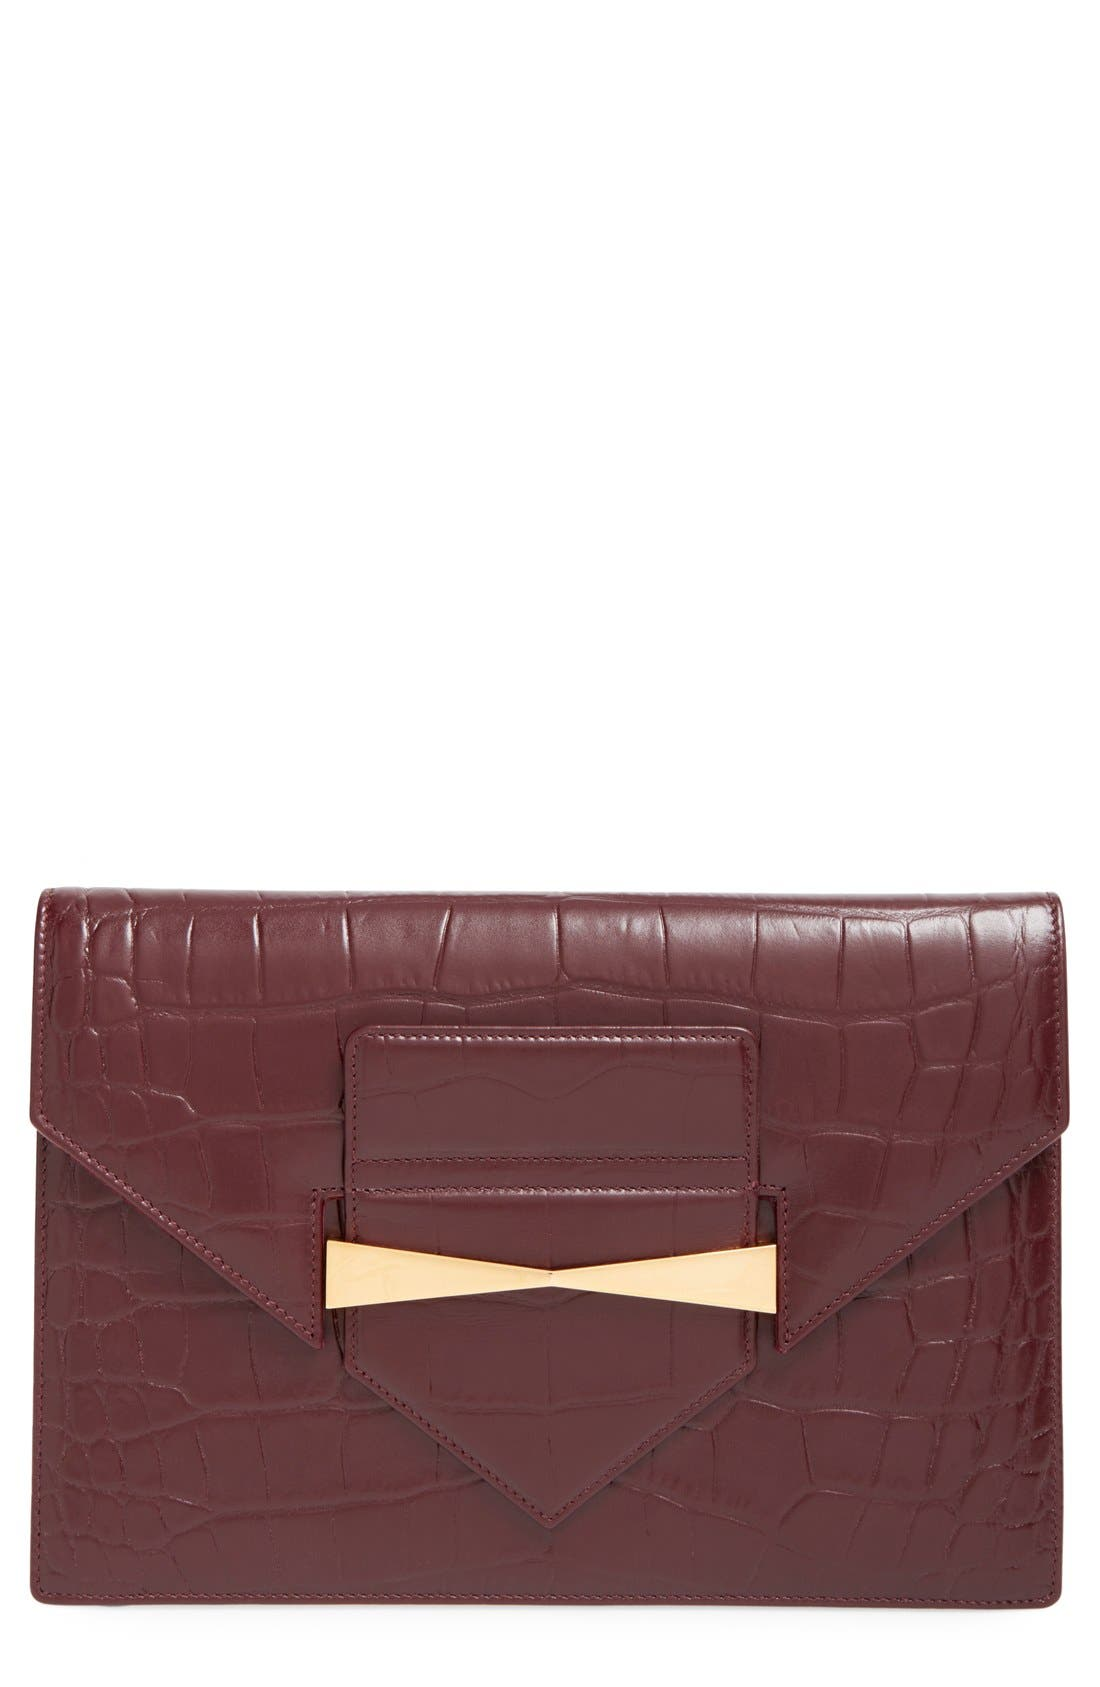 Alternate Image 1 Selected - Alexander McQueen Croc Embossed Envelope Clutch